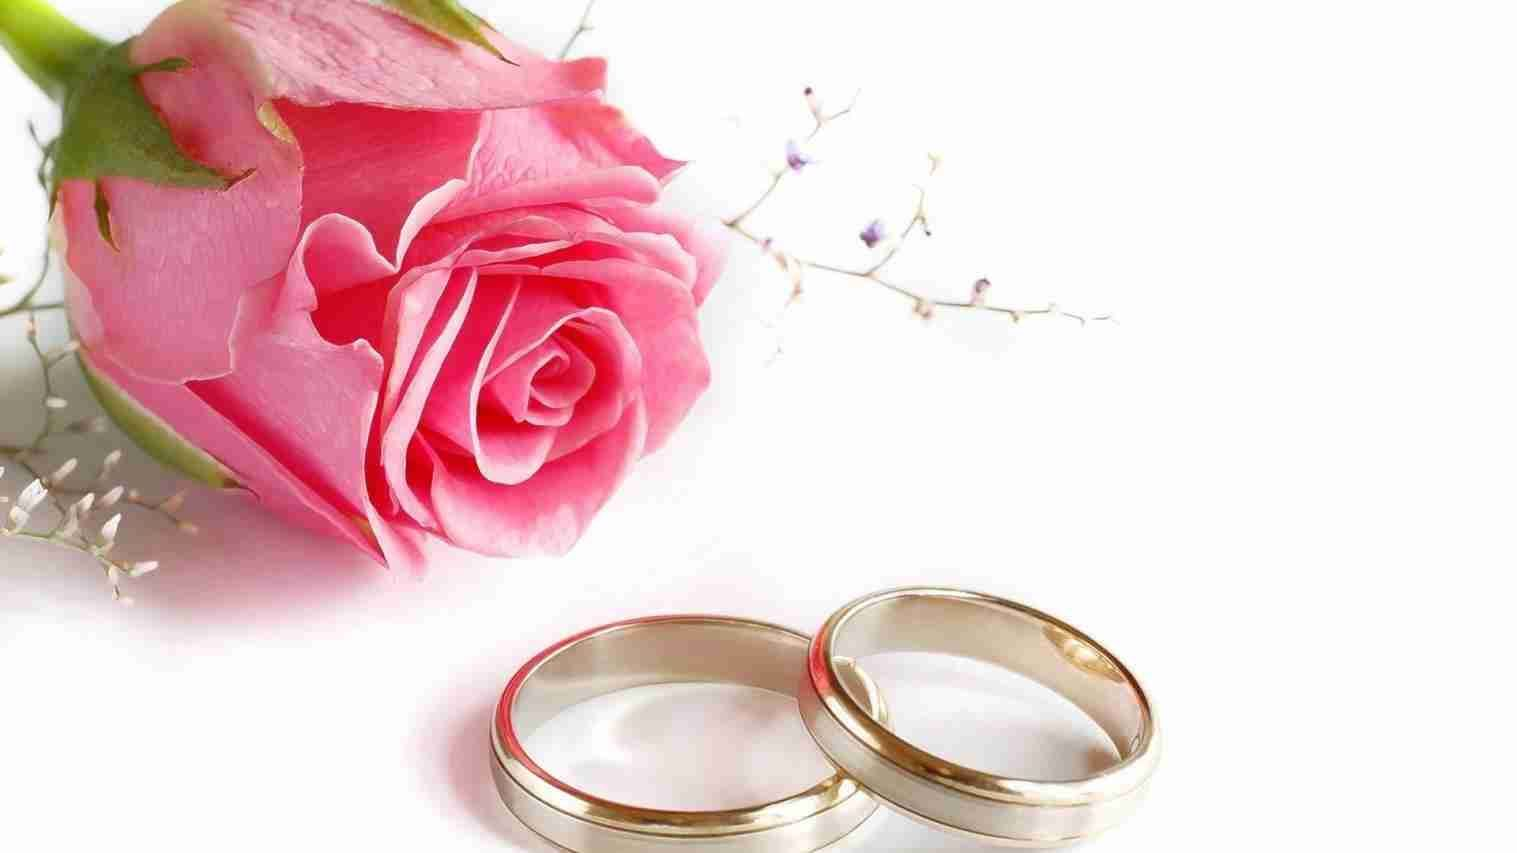 New Post wedding rings and flowers wallpaper | Weddings | Pinterest ...